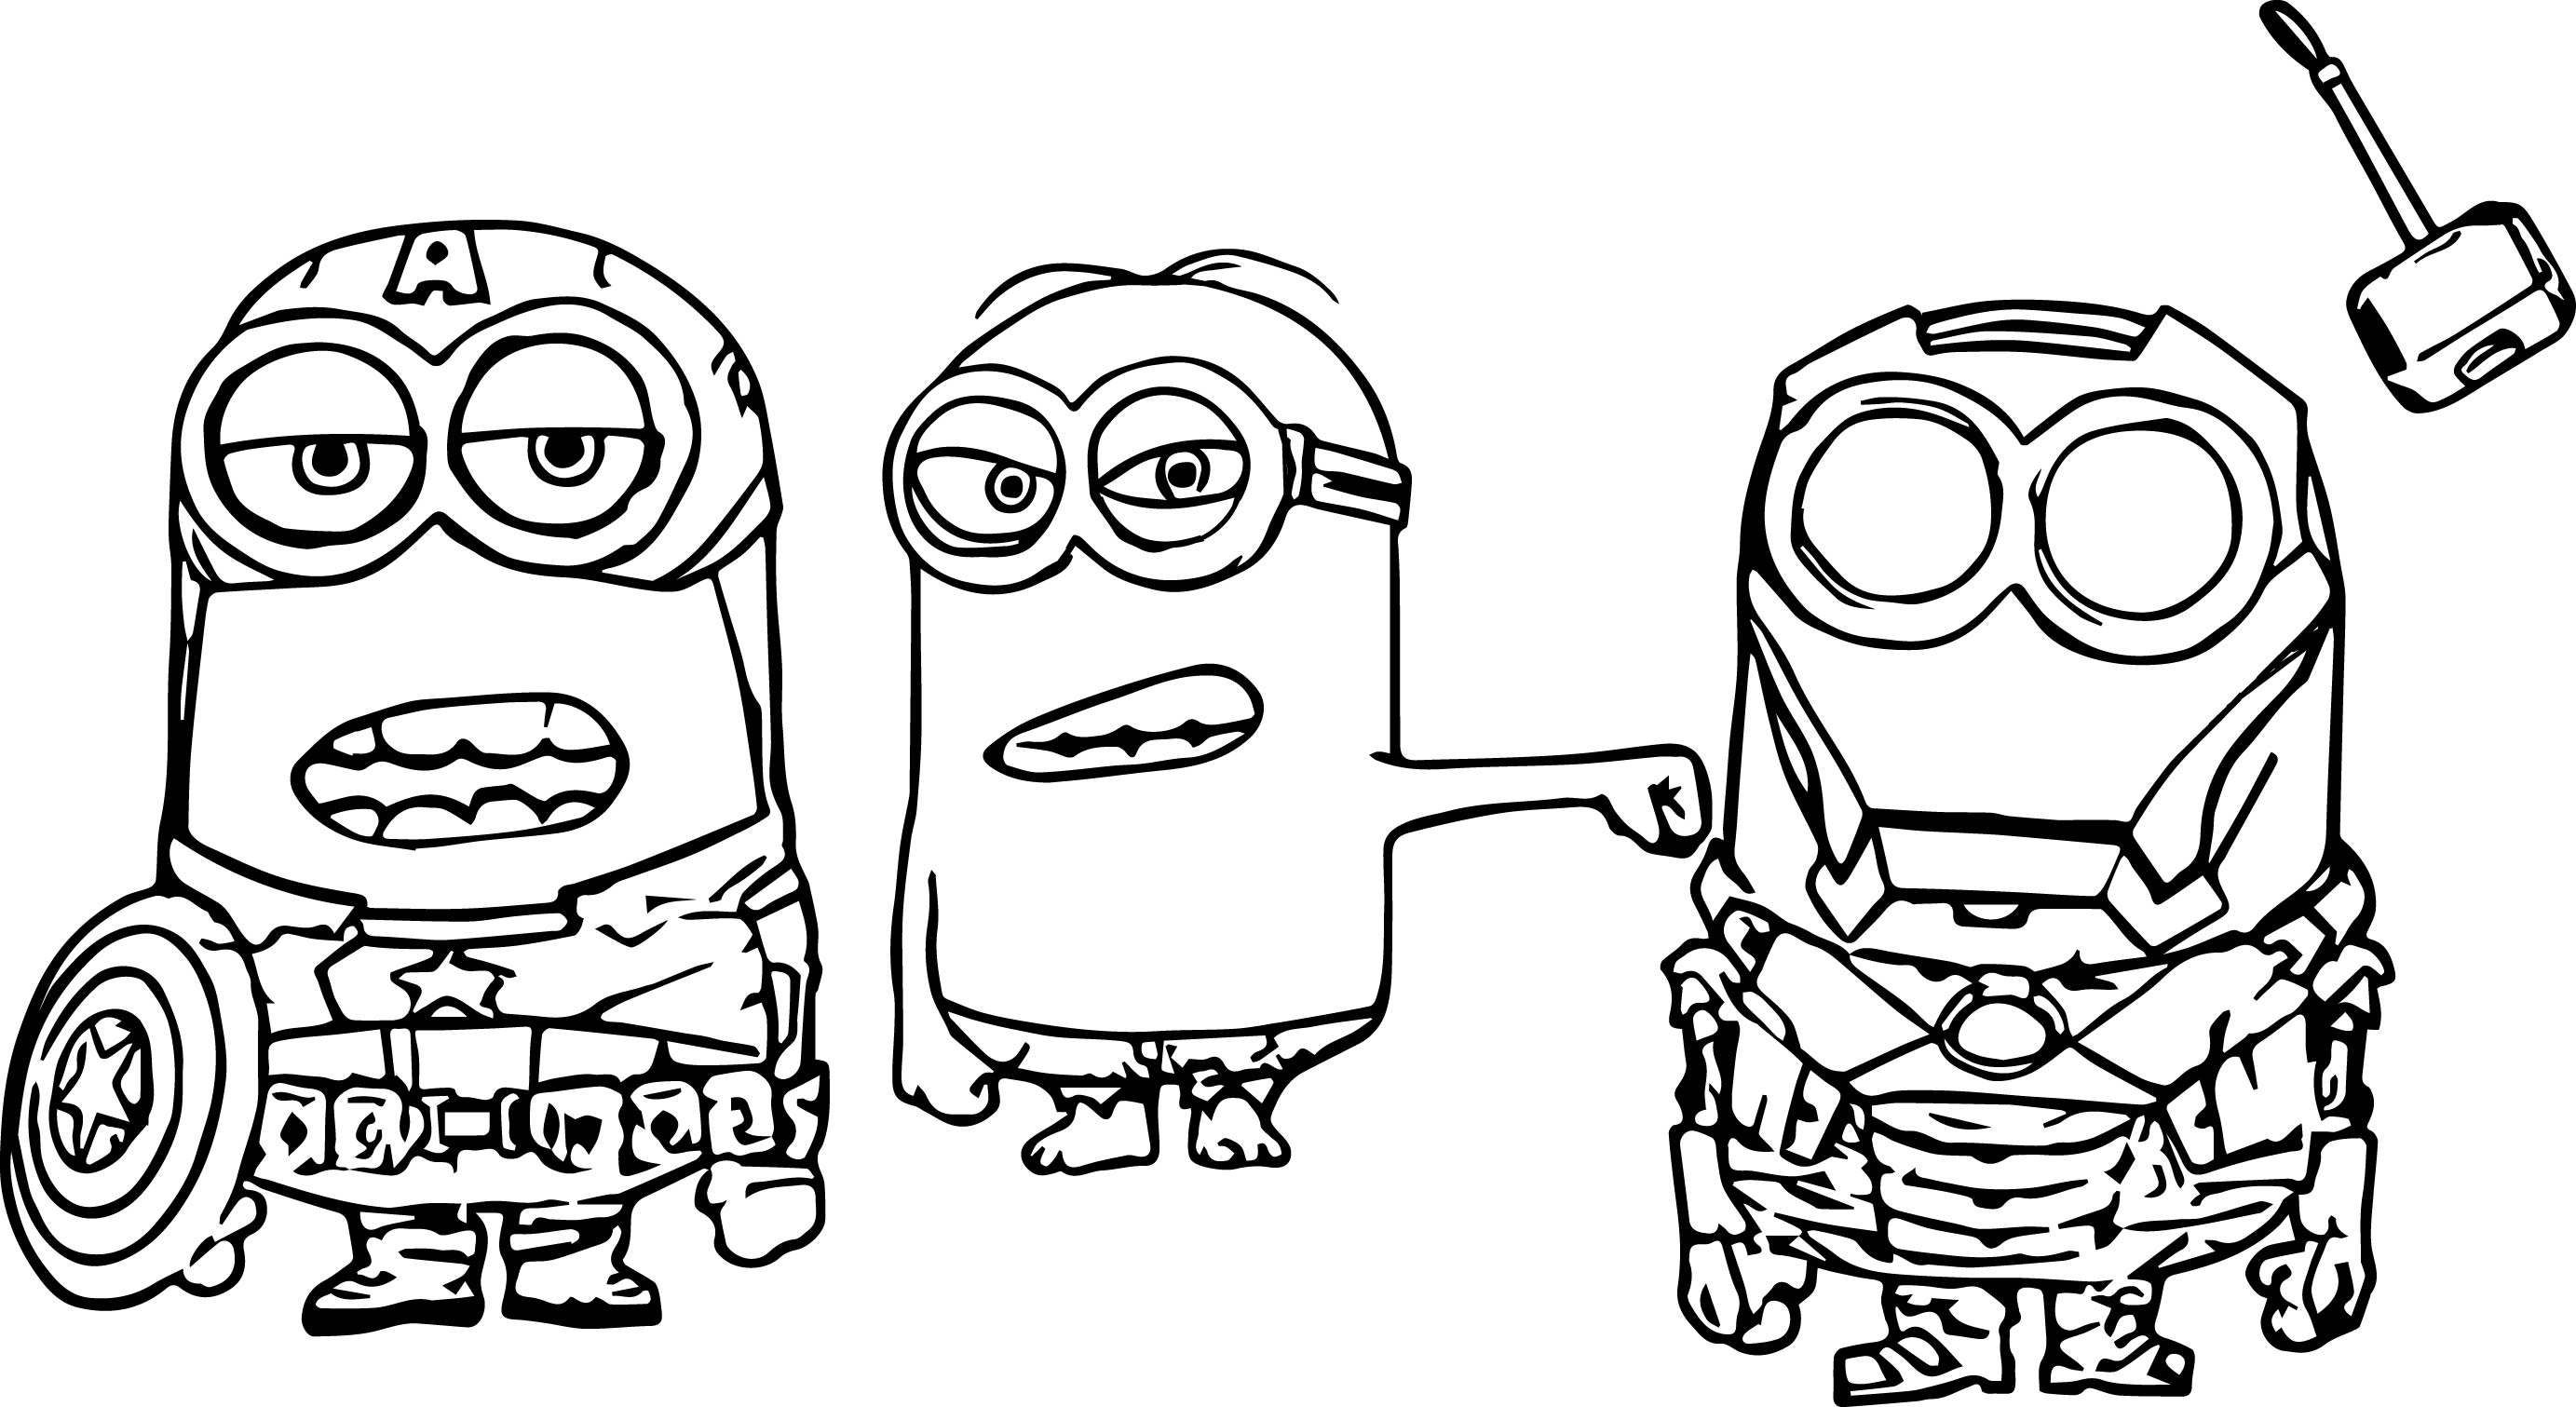 Super Hero Coloring Pages Brilliant Minion Super Heroes Coloring Page  Wecoloringpage Inspiration